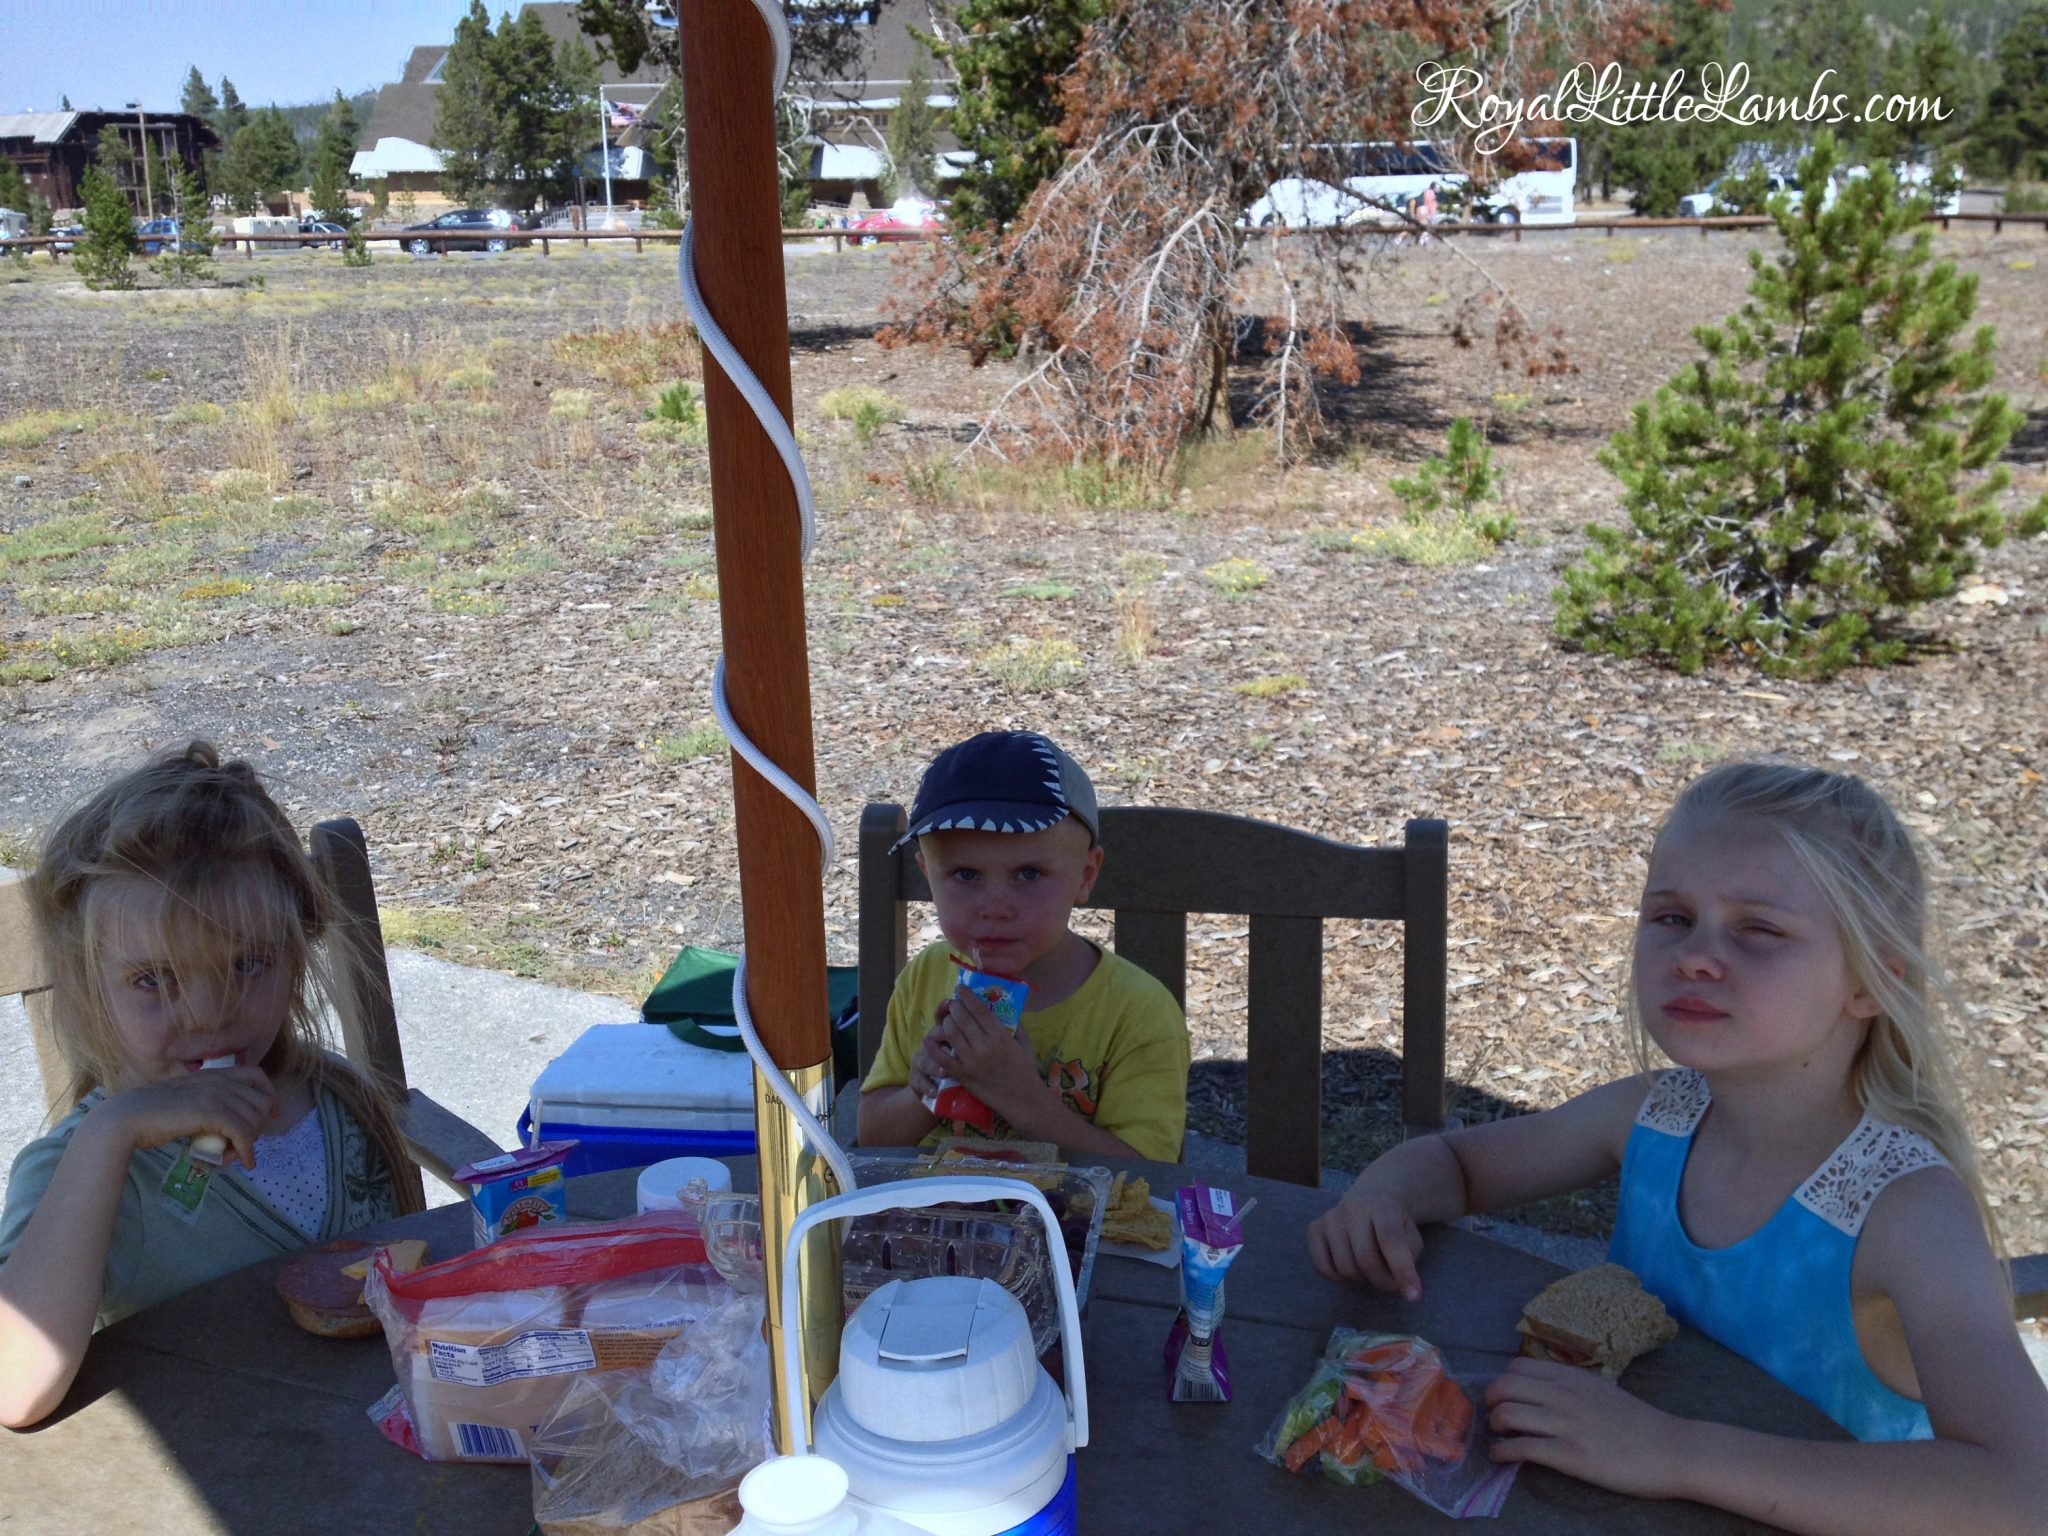 Picnic at Old Faithful